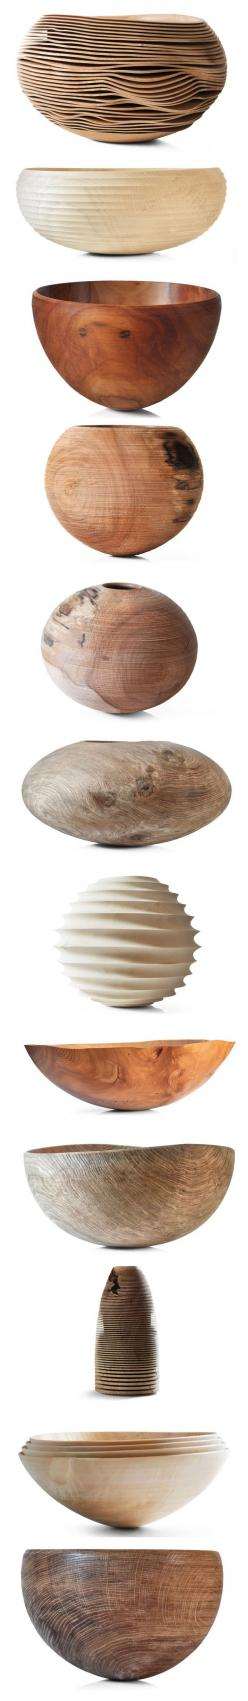 Mahadev wood industries is leading industries in #wooden branded project, We provide best product among others competitors for our esteem customers.: Wooden Bowls, Wood Bowls Turning, Idea, Bowls Art, Beautiful Wooden, Woodturning, Beautifull Wooden, Beau